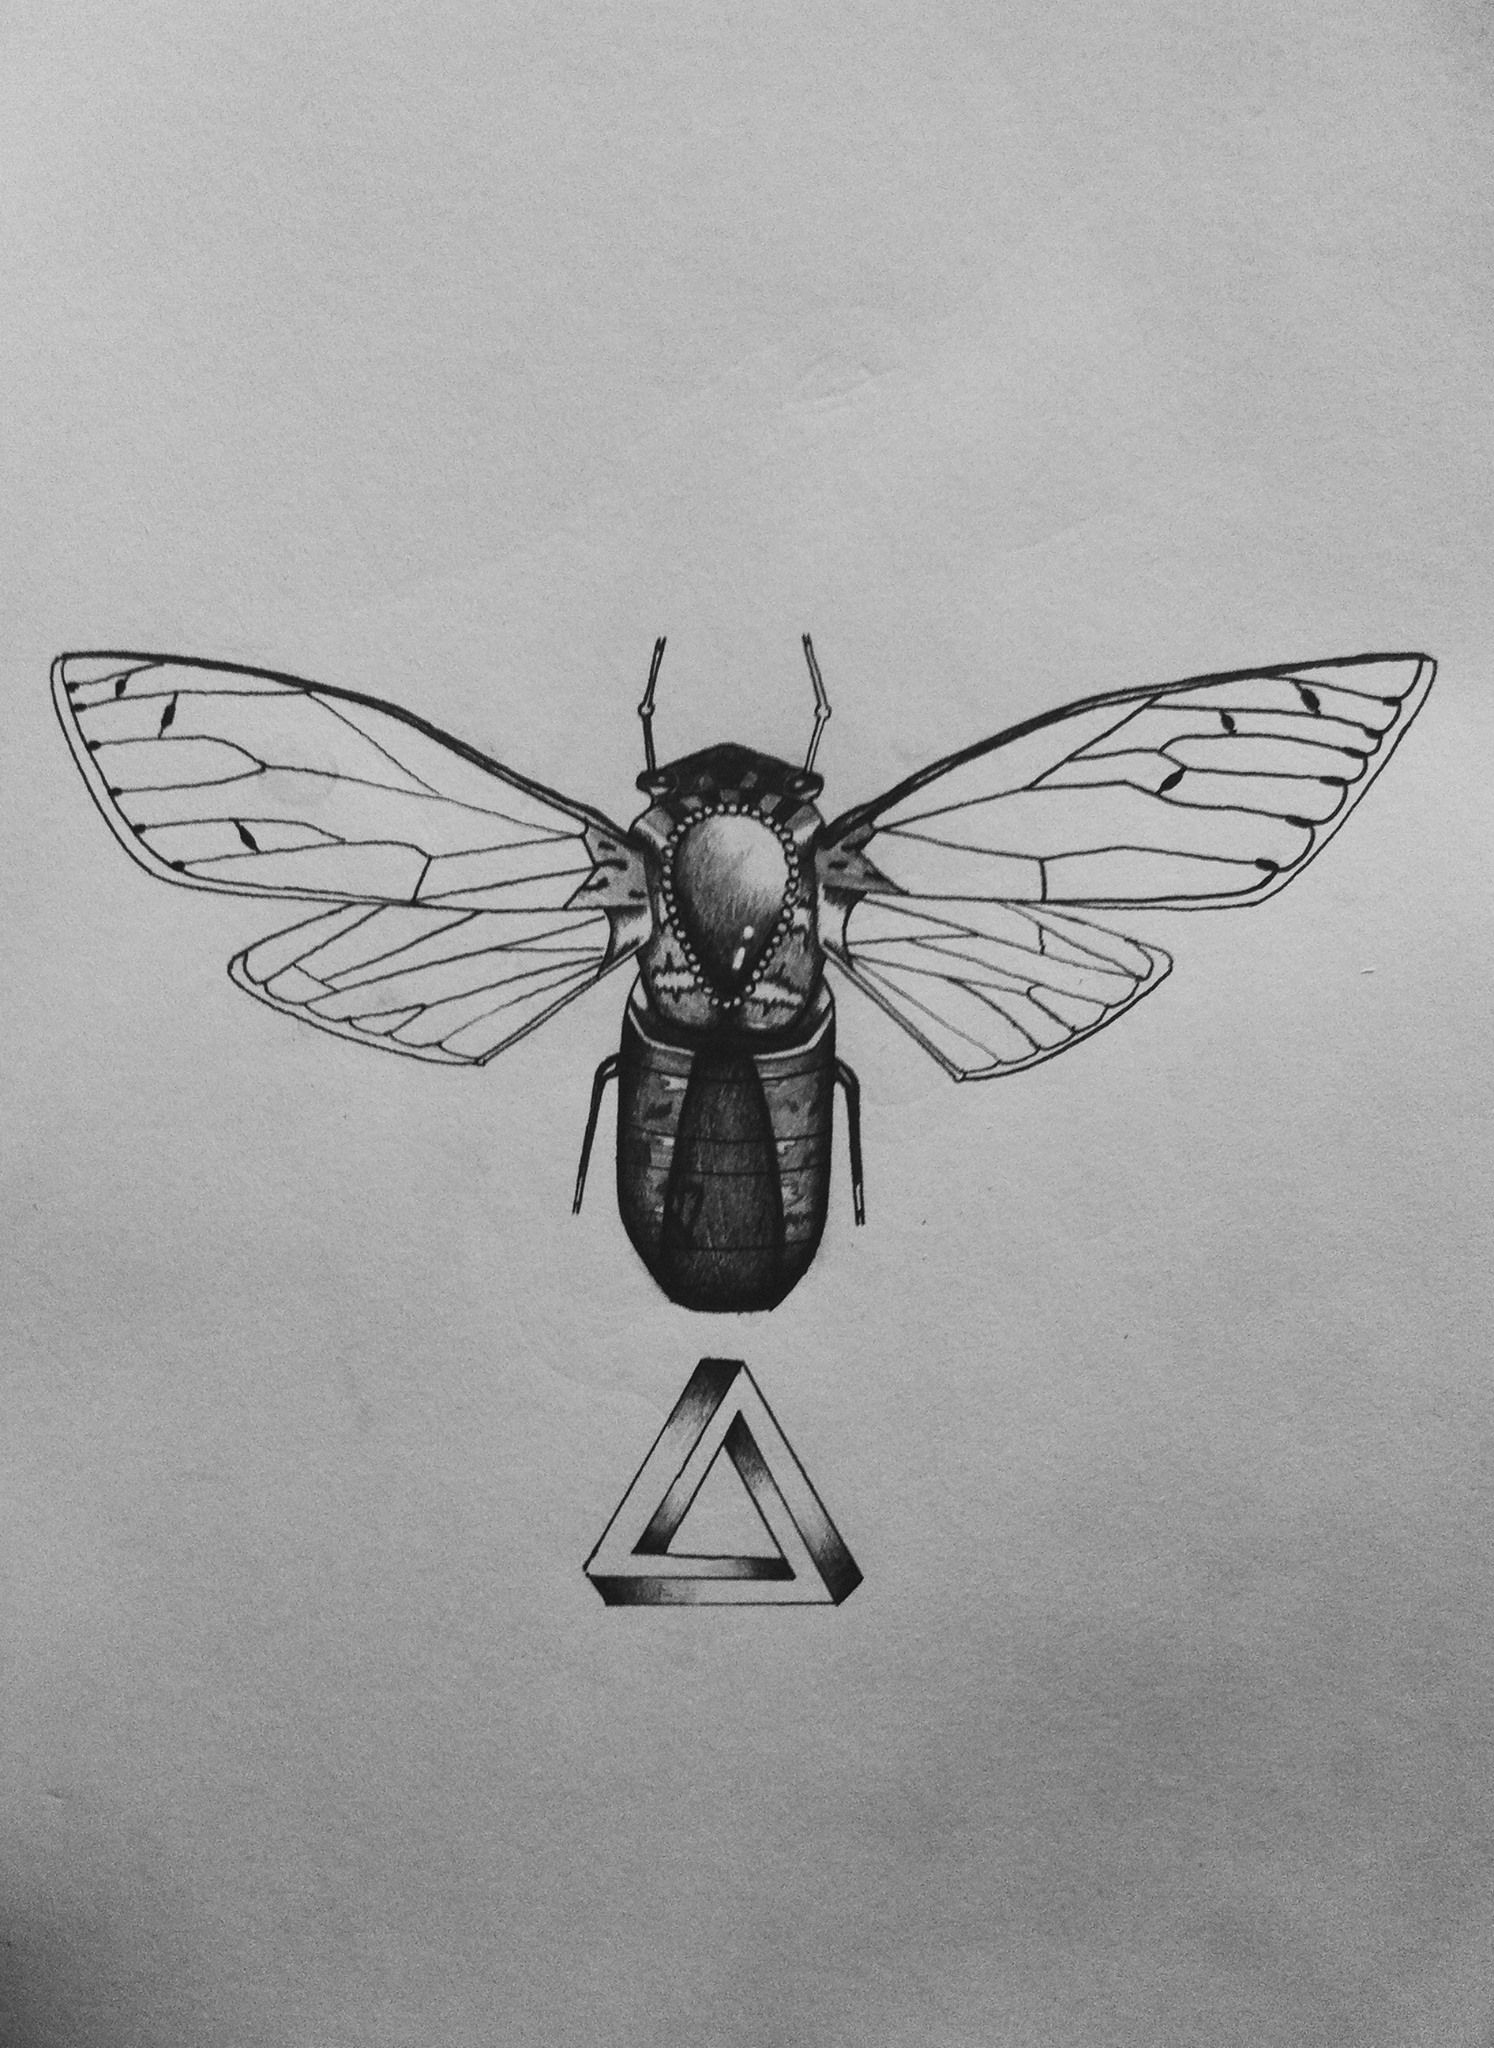 Small Flying Bugs In Bedroom Flying Insect Diagram As A Tattoo Ink Pinterest Insect